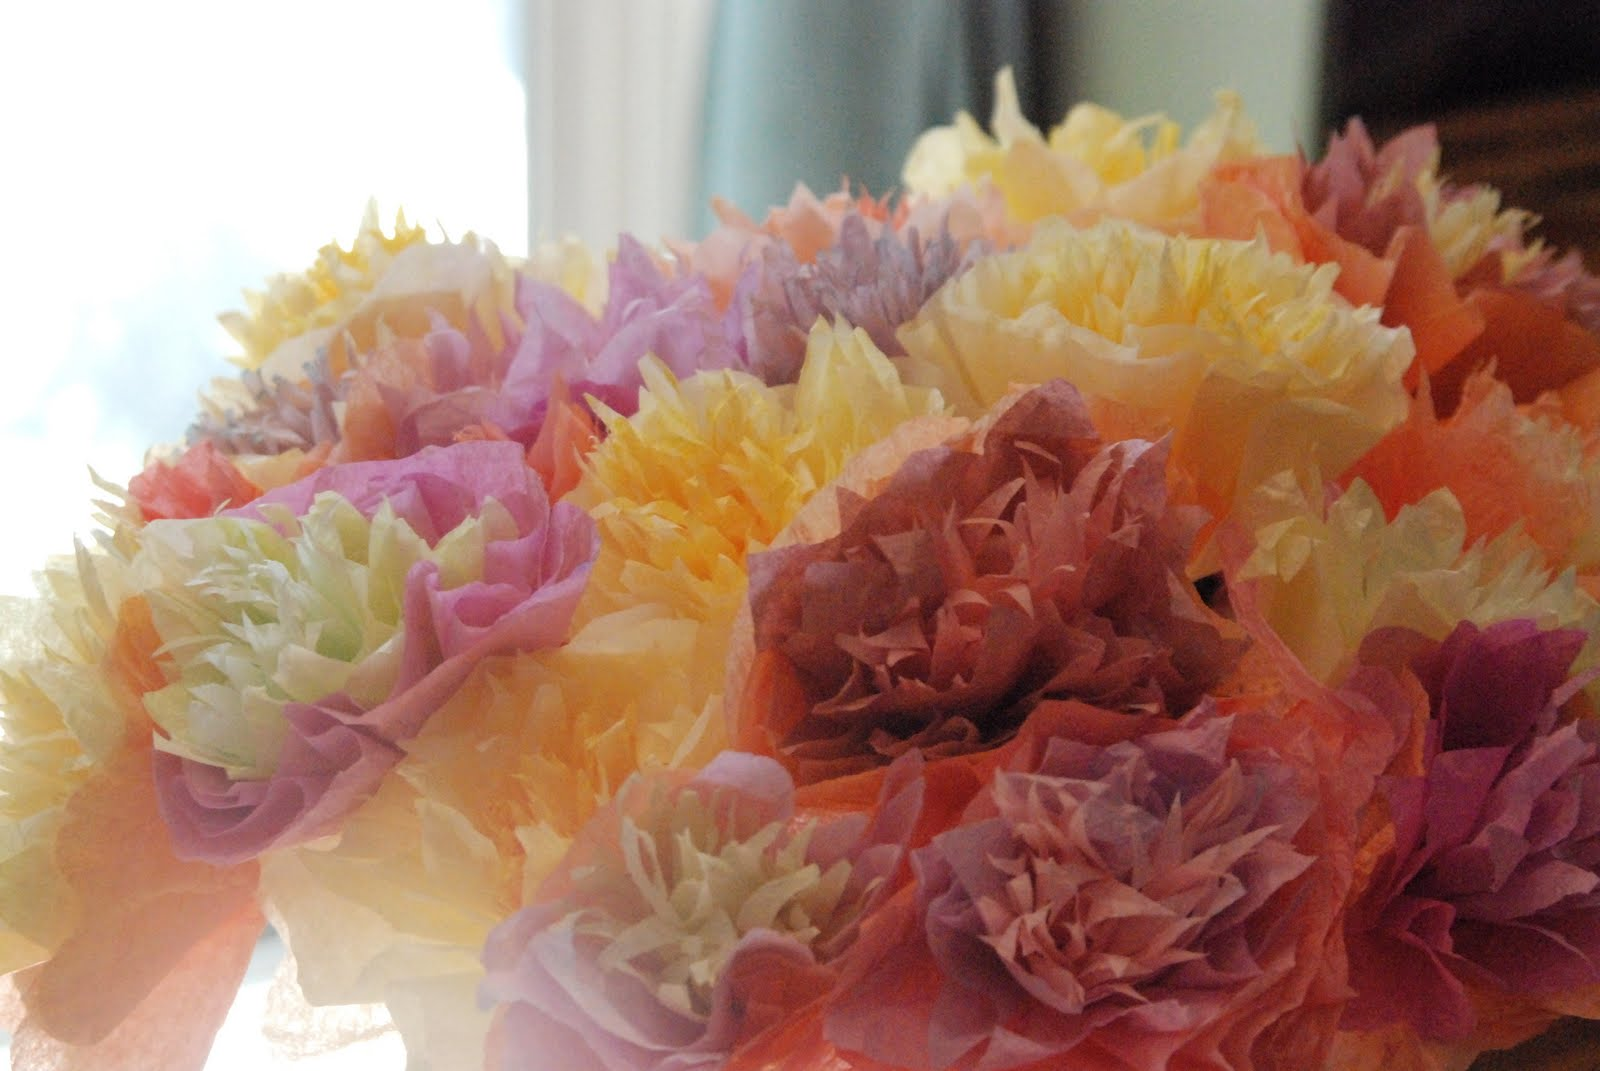 Homemade Serenity: Why Don\'t You Make Coffee Filter Flowers